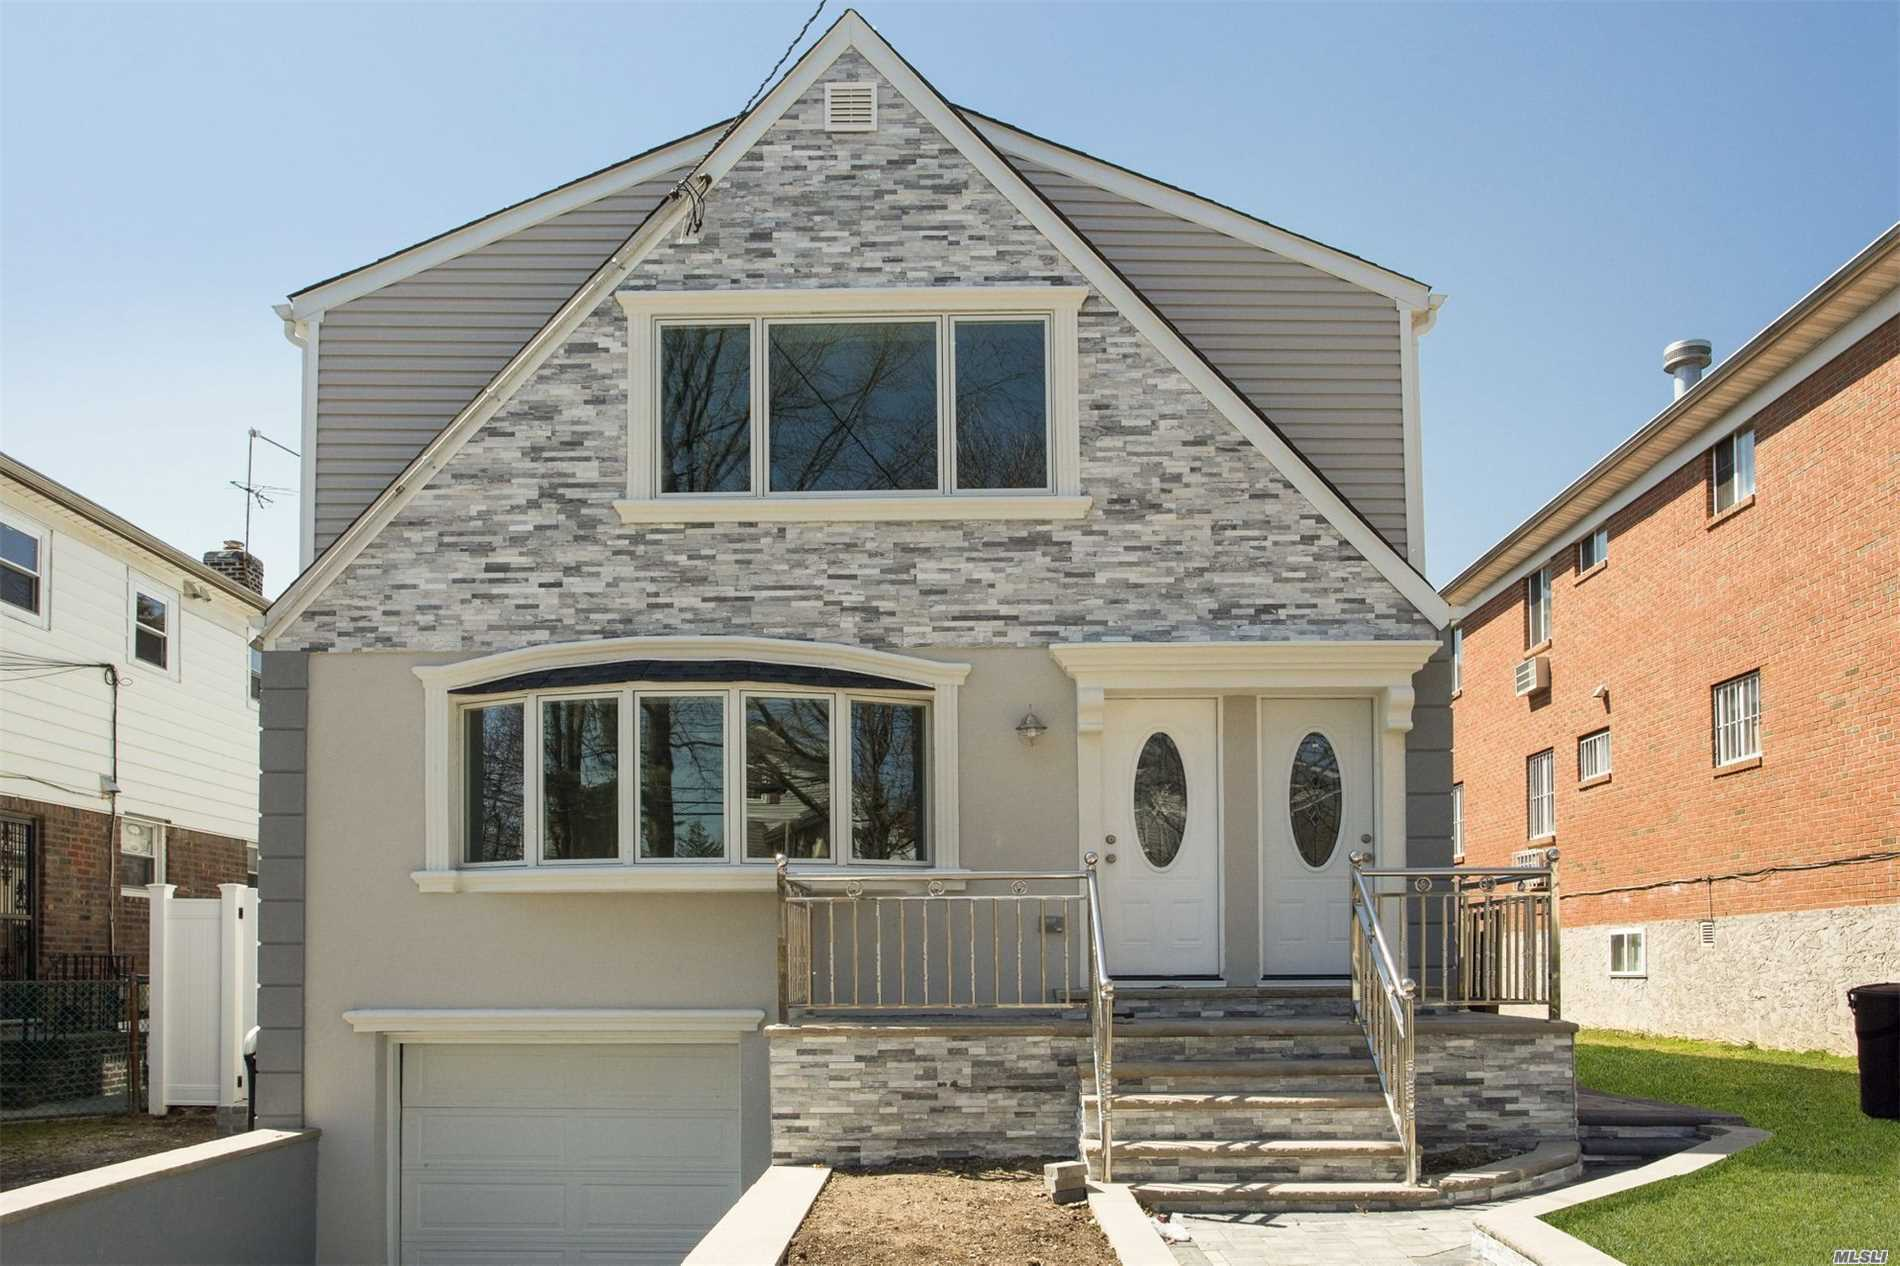 Incredible TWO Family Colonial with contemporary stucco/stone detailing, an attached garage, and unrivaled curb appeal sits on well-kept property in a desirable neighborhood. A bright entryway welcomes you to the main floor or the second floor three-bedroom unit with rich hardwood floors, impeccable molding, and designer details throughout. Entertain guests in the large and inviting living/dining room with a gorgeous bay window and a sleek kitchen is complete with new stainless steel appliances